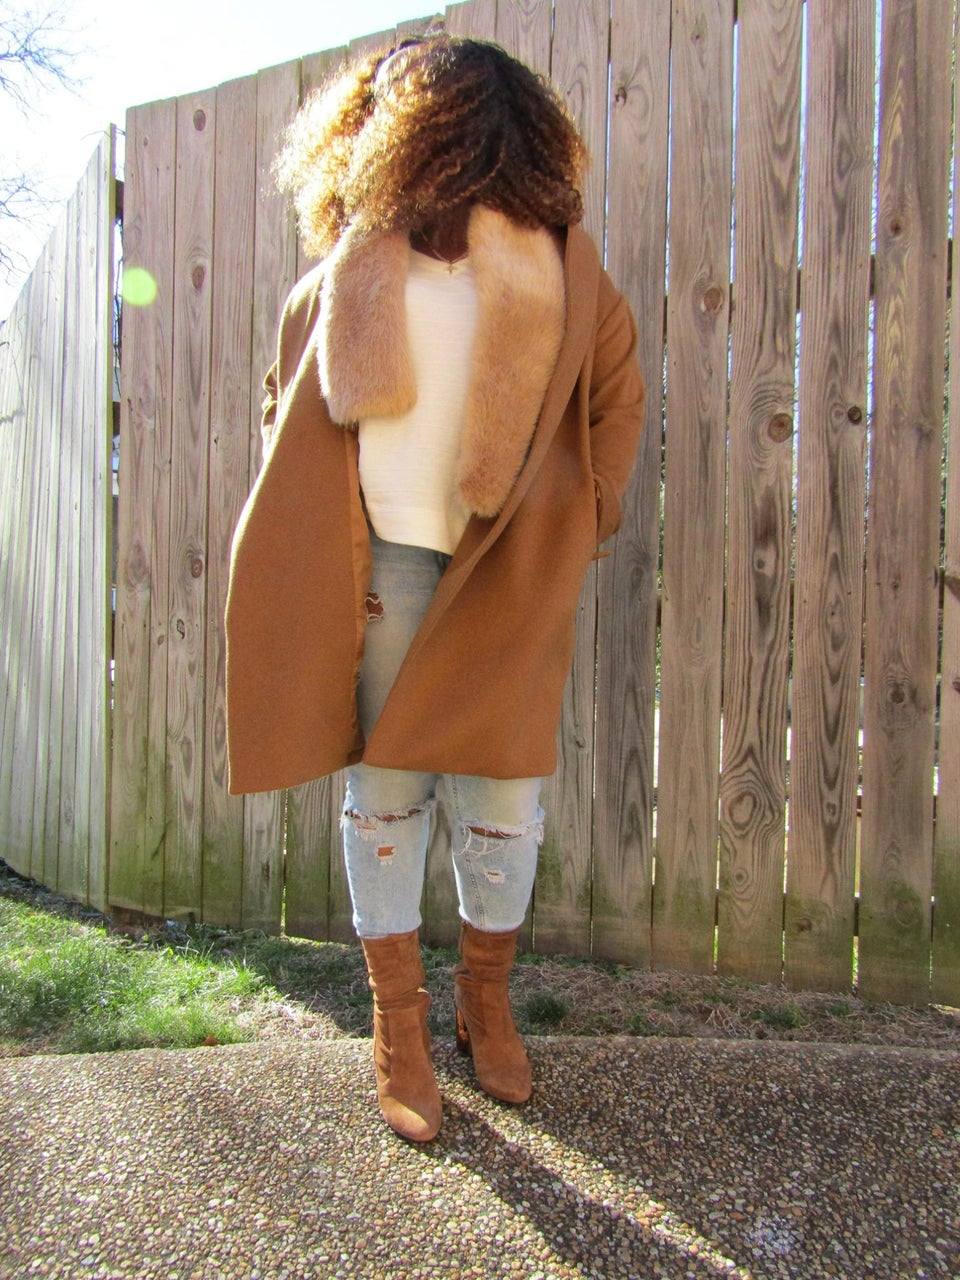 Staying Warm and Stylish During the Colder Temperatures